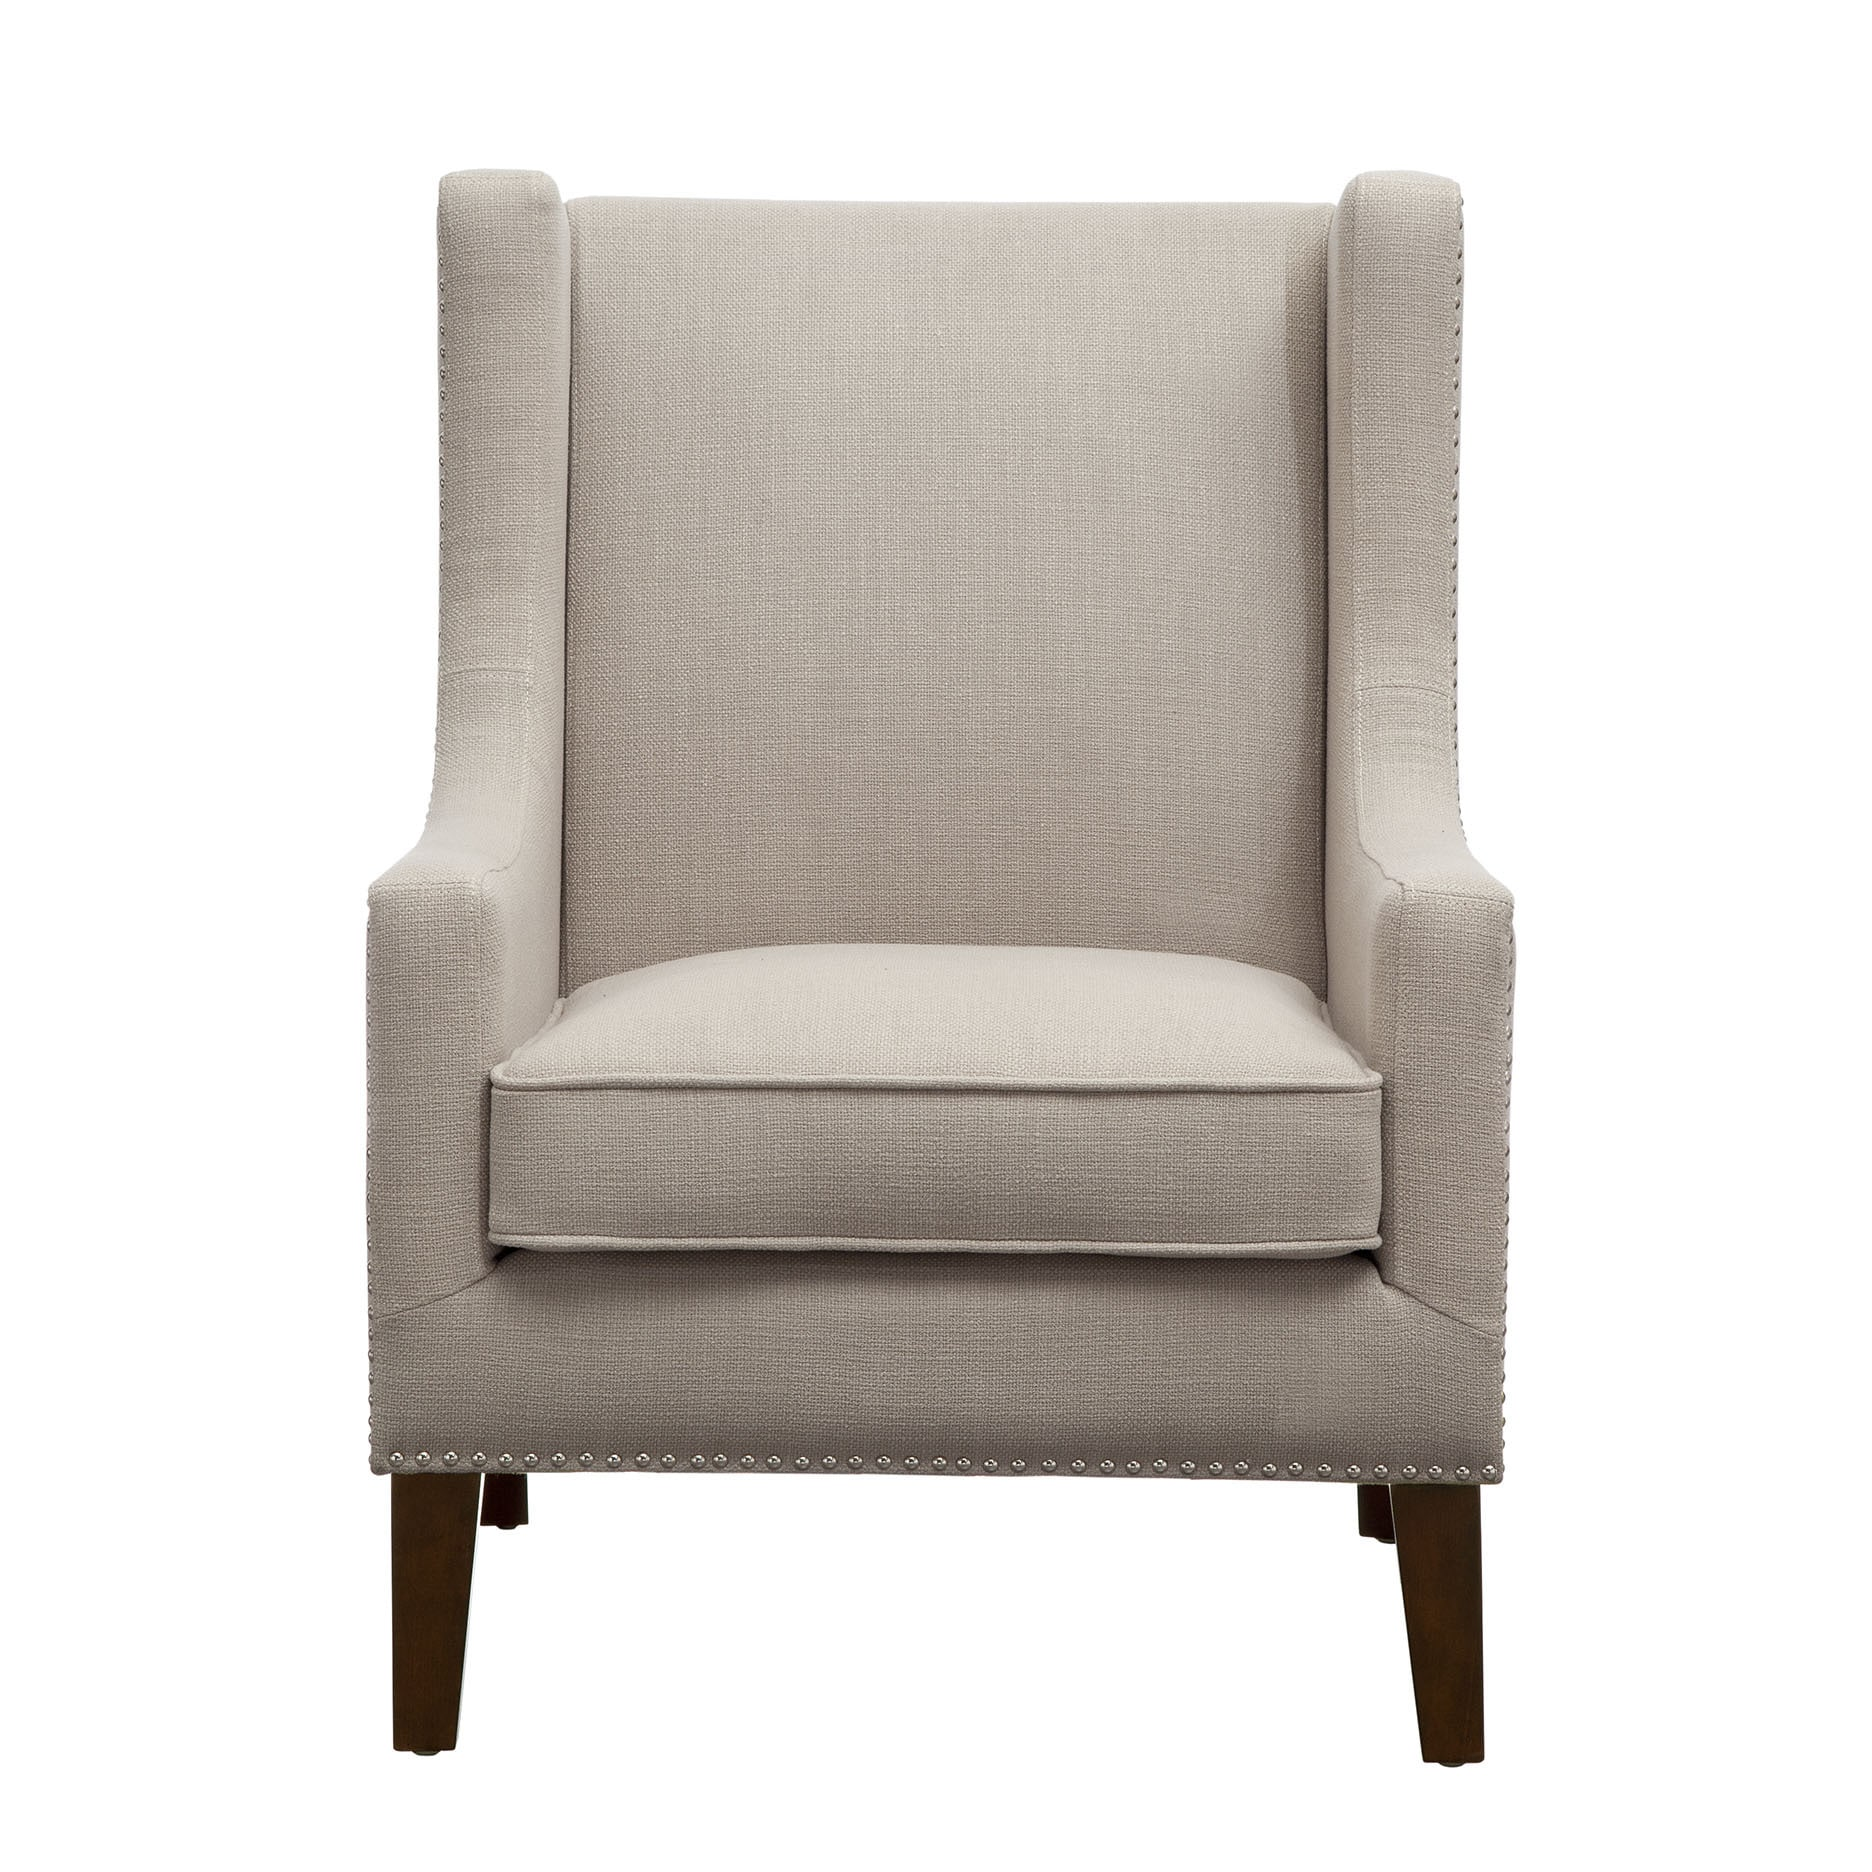 Superieur Shop Madison Park Weston Linen Wing Chair   Free Shipping Today    Overstock.com   12754712